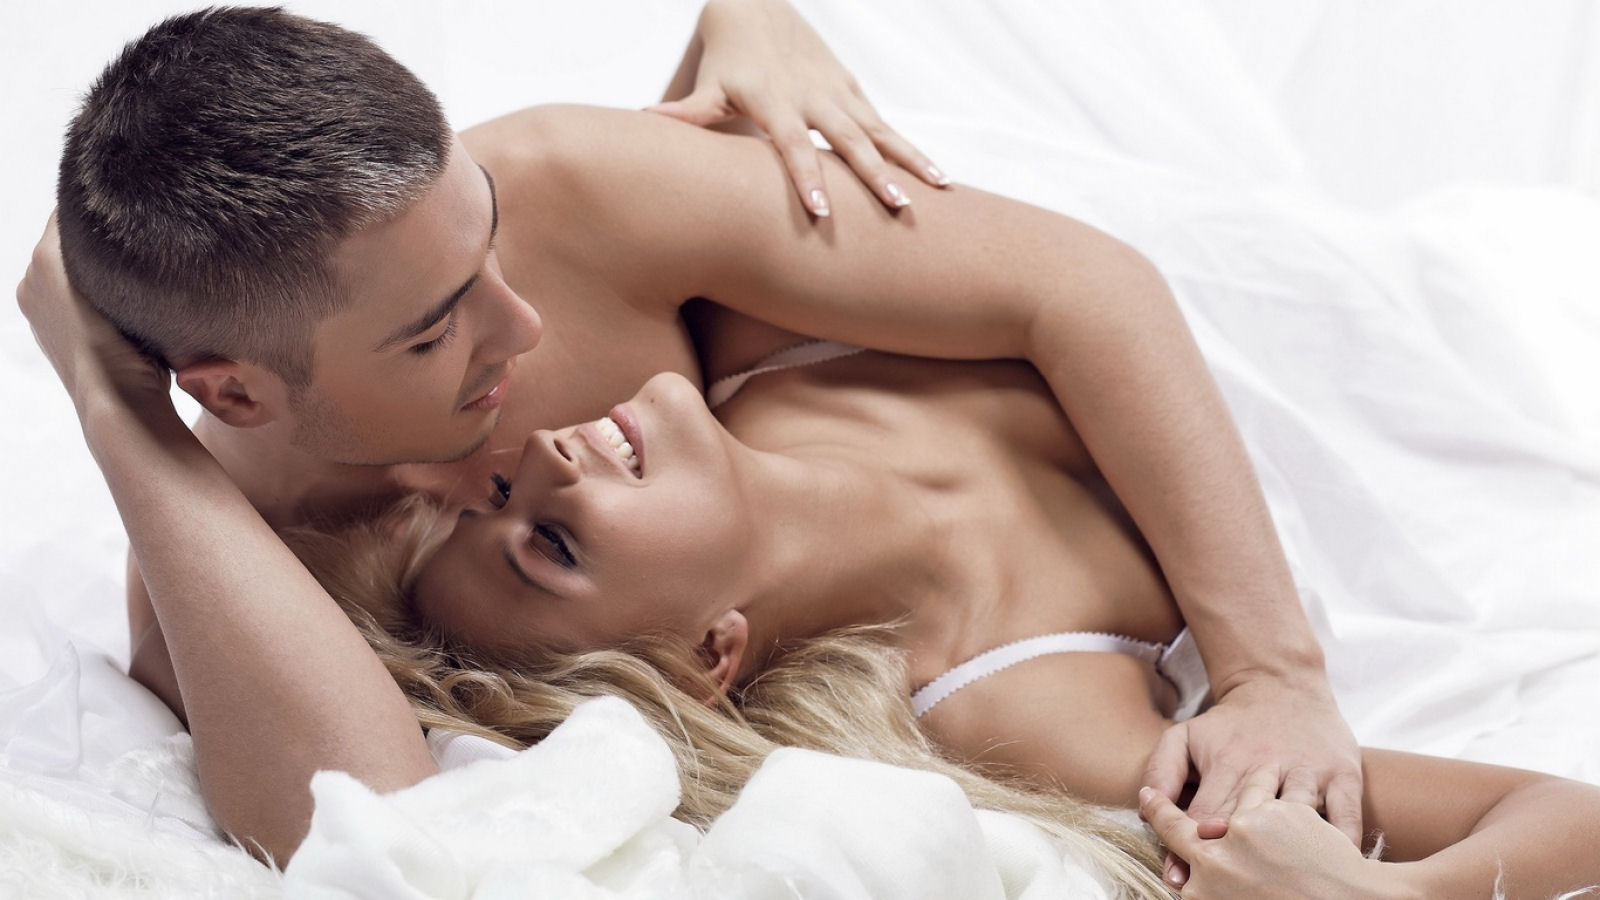 new-sexual-experience-for-couples-nude-pics-boys-tampa